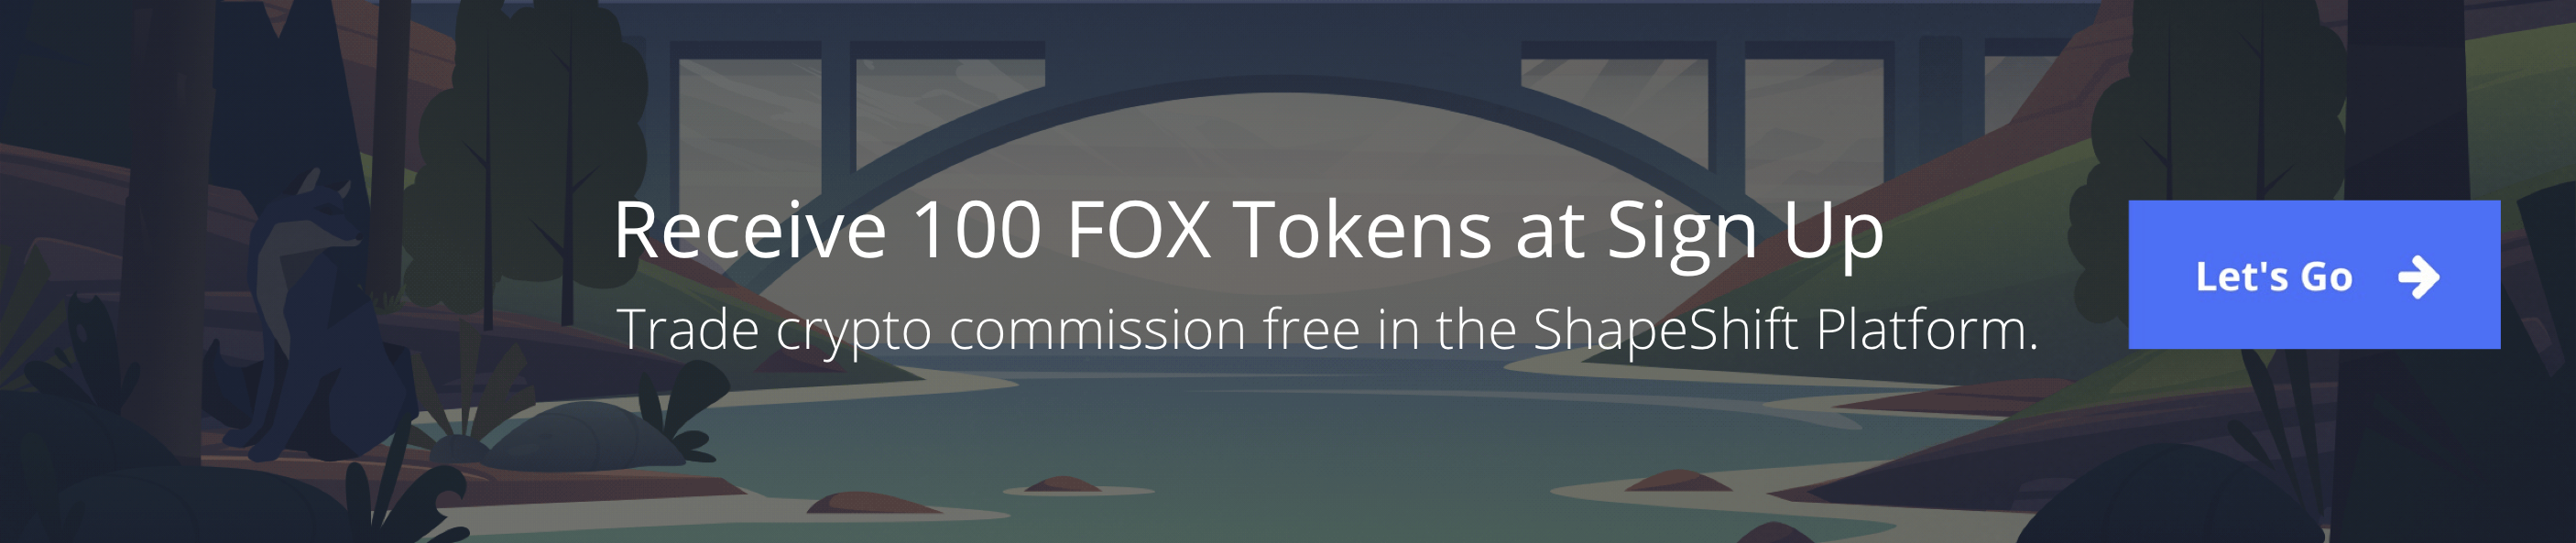 Sign up today to get 100 FOX Tokens, commission free trading, and access a powerful platform that will fit any of your crypto needs.